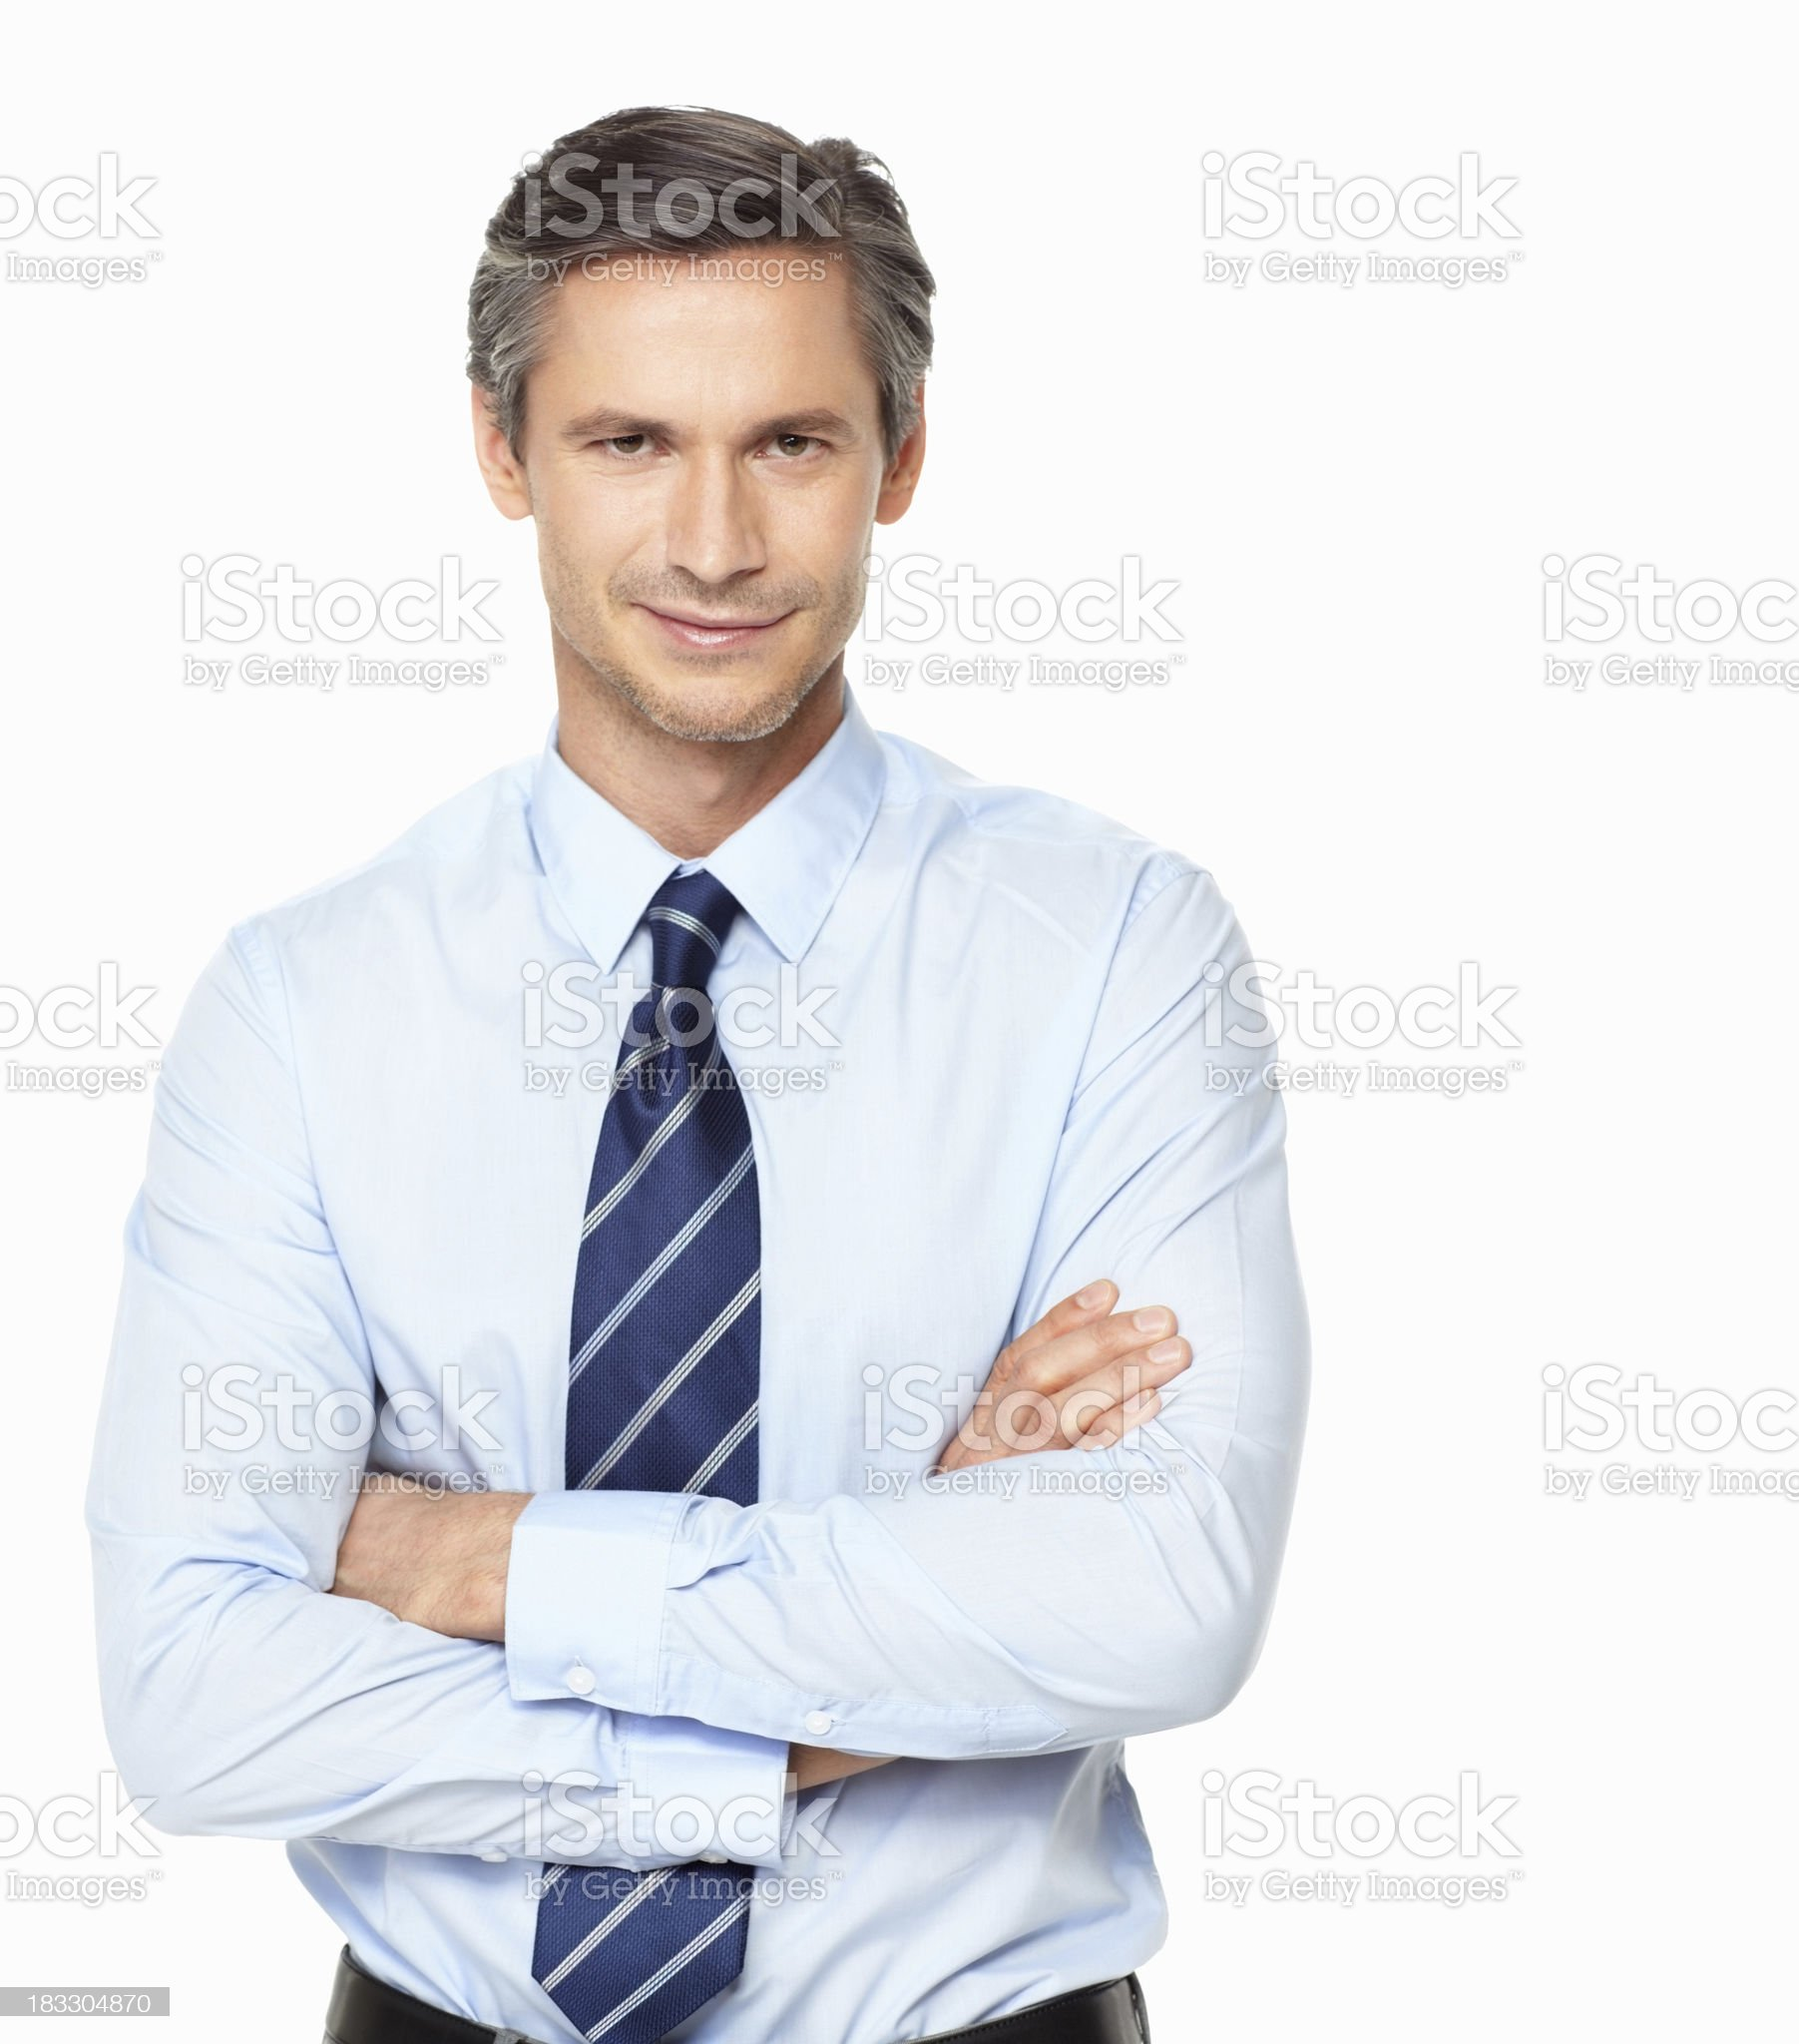 Confident business man with hands folded against white background royalty-free stock photo